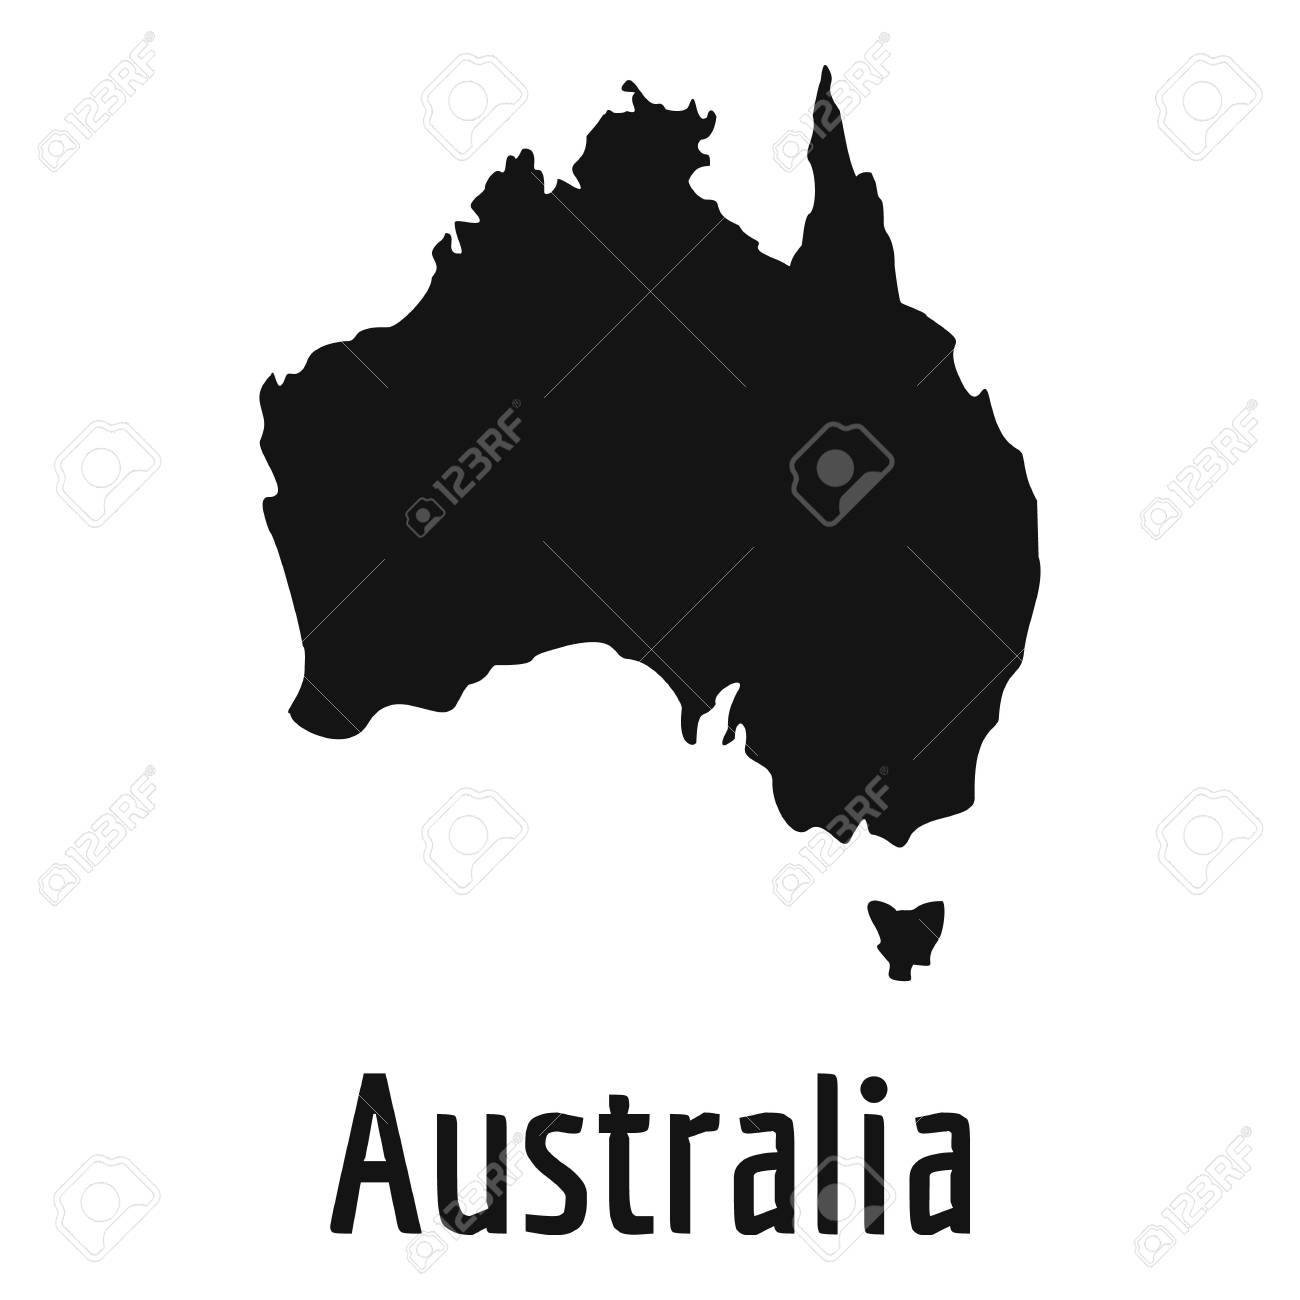 australia map in black simple illustration of australia map vector isolated on white background foto